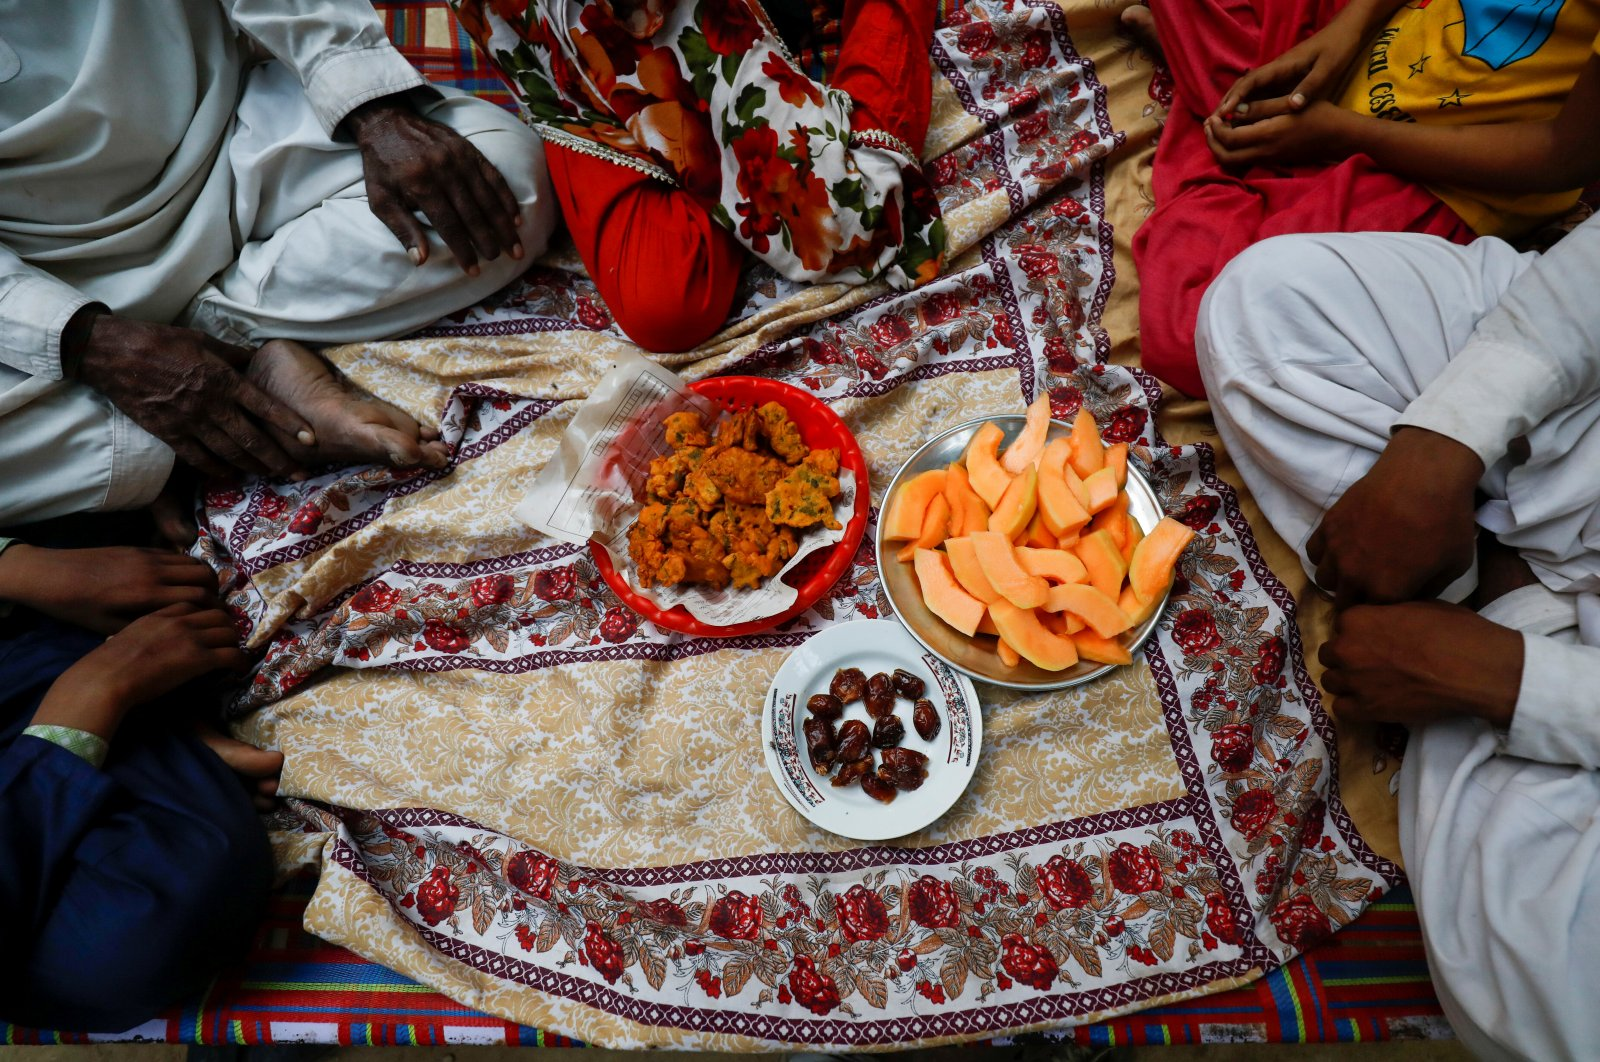 Fisherman Mohammad Sabir, 60, sits with his family as they wait to break their fast during the Muslim fasting month of Ramadan, amid the outbreak of the coronavirus disease (COVID-19), in Ibrahim Hyderi fishing village on the outskirts of Karachi, Pakistan April 30, 2020. (REUTERS Photo)